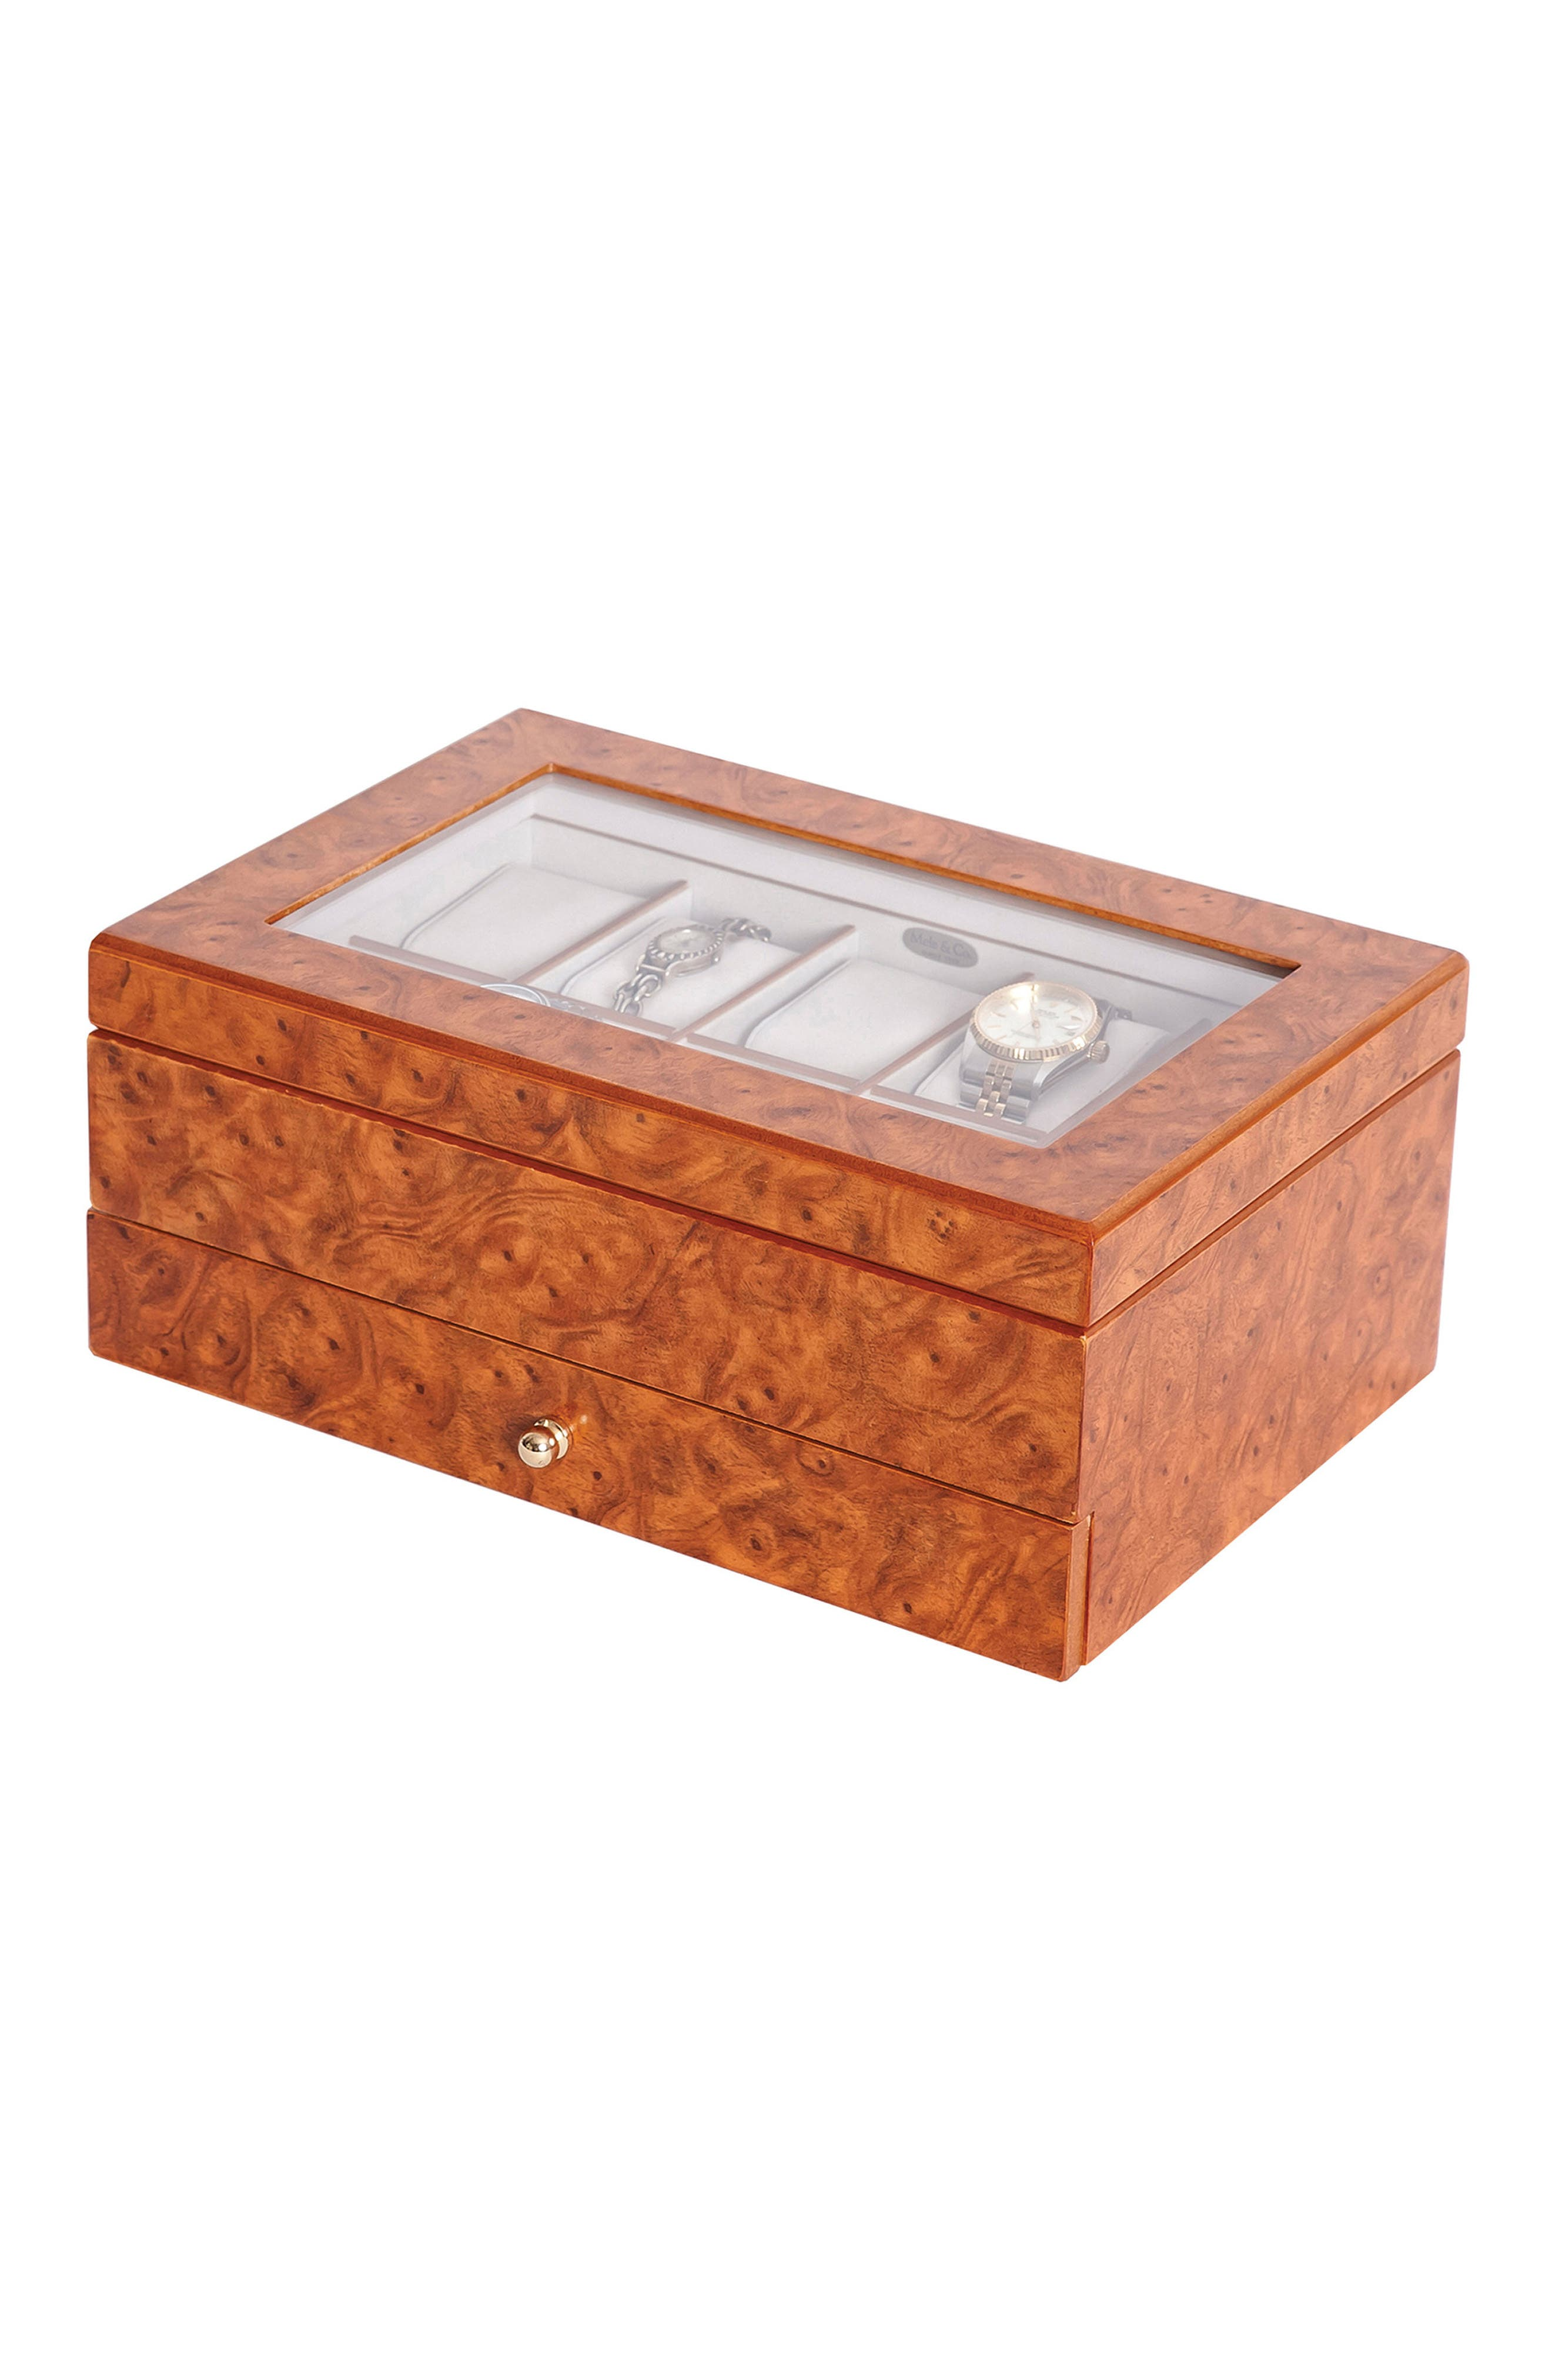 Main Image - Mele & Co. Peyton Glass Top Watch Box